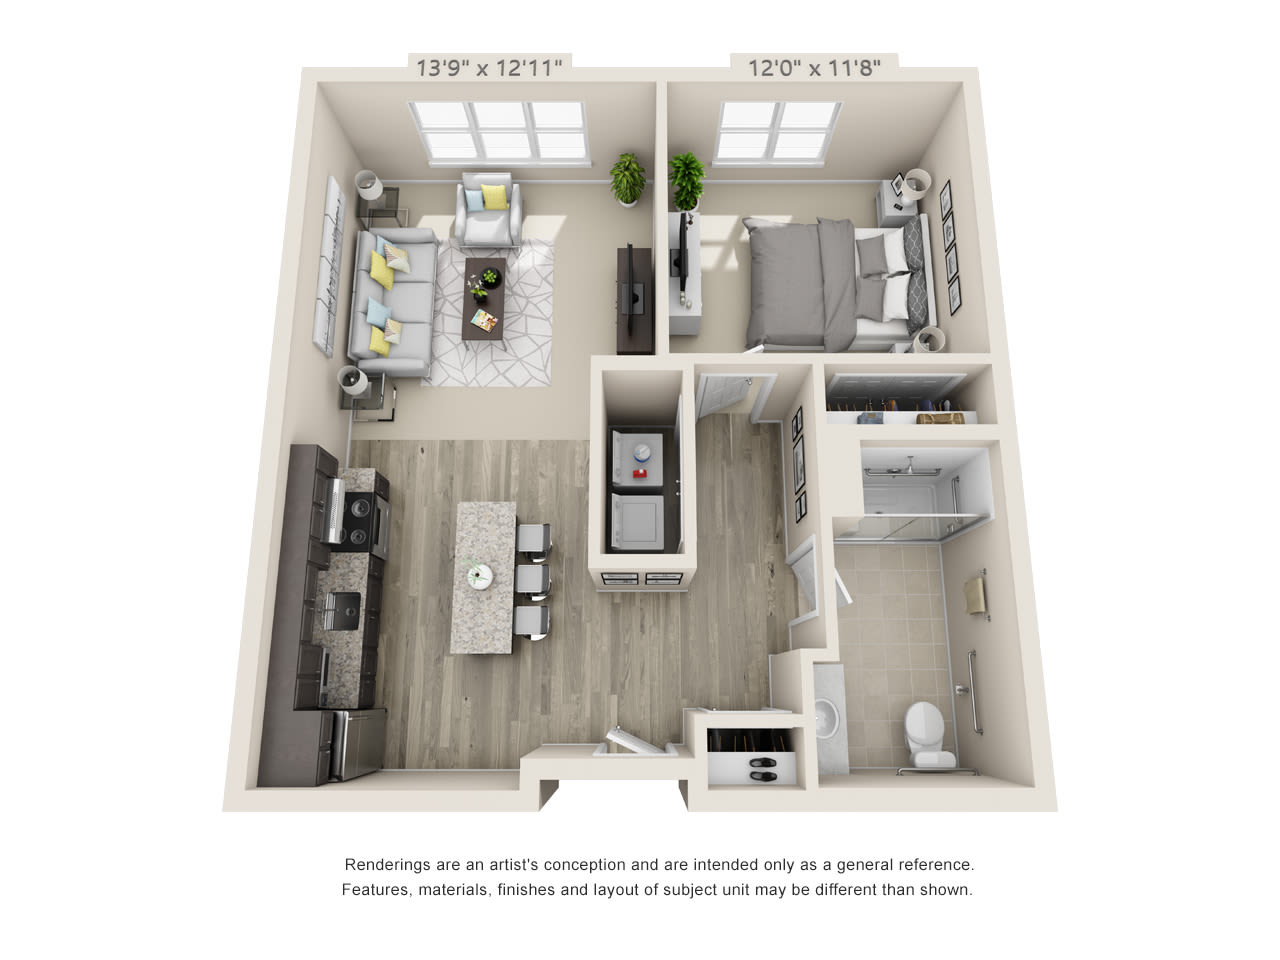 One bedroom accessible floor plan at Talamore Senior Living in St. Cloud, Minnesota